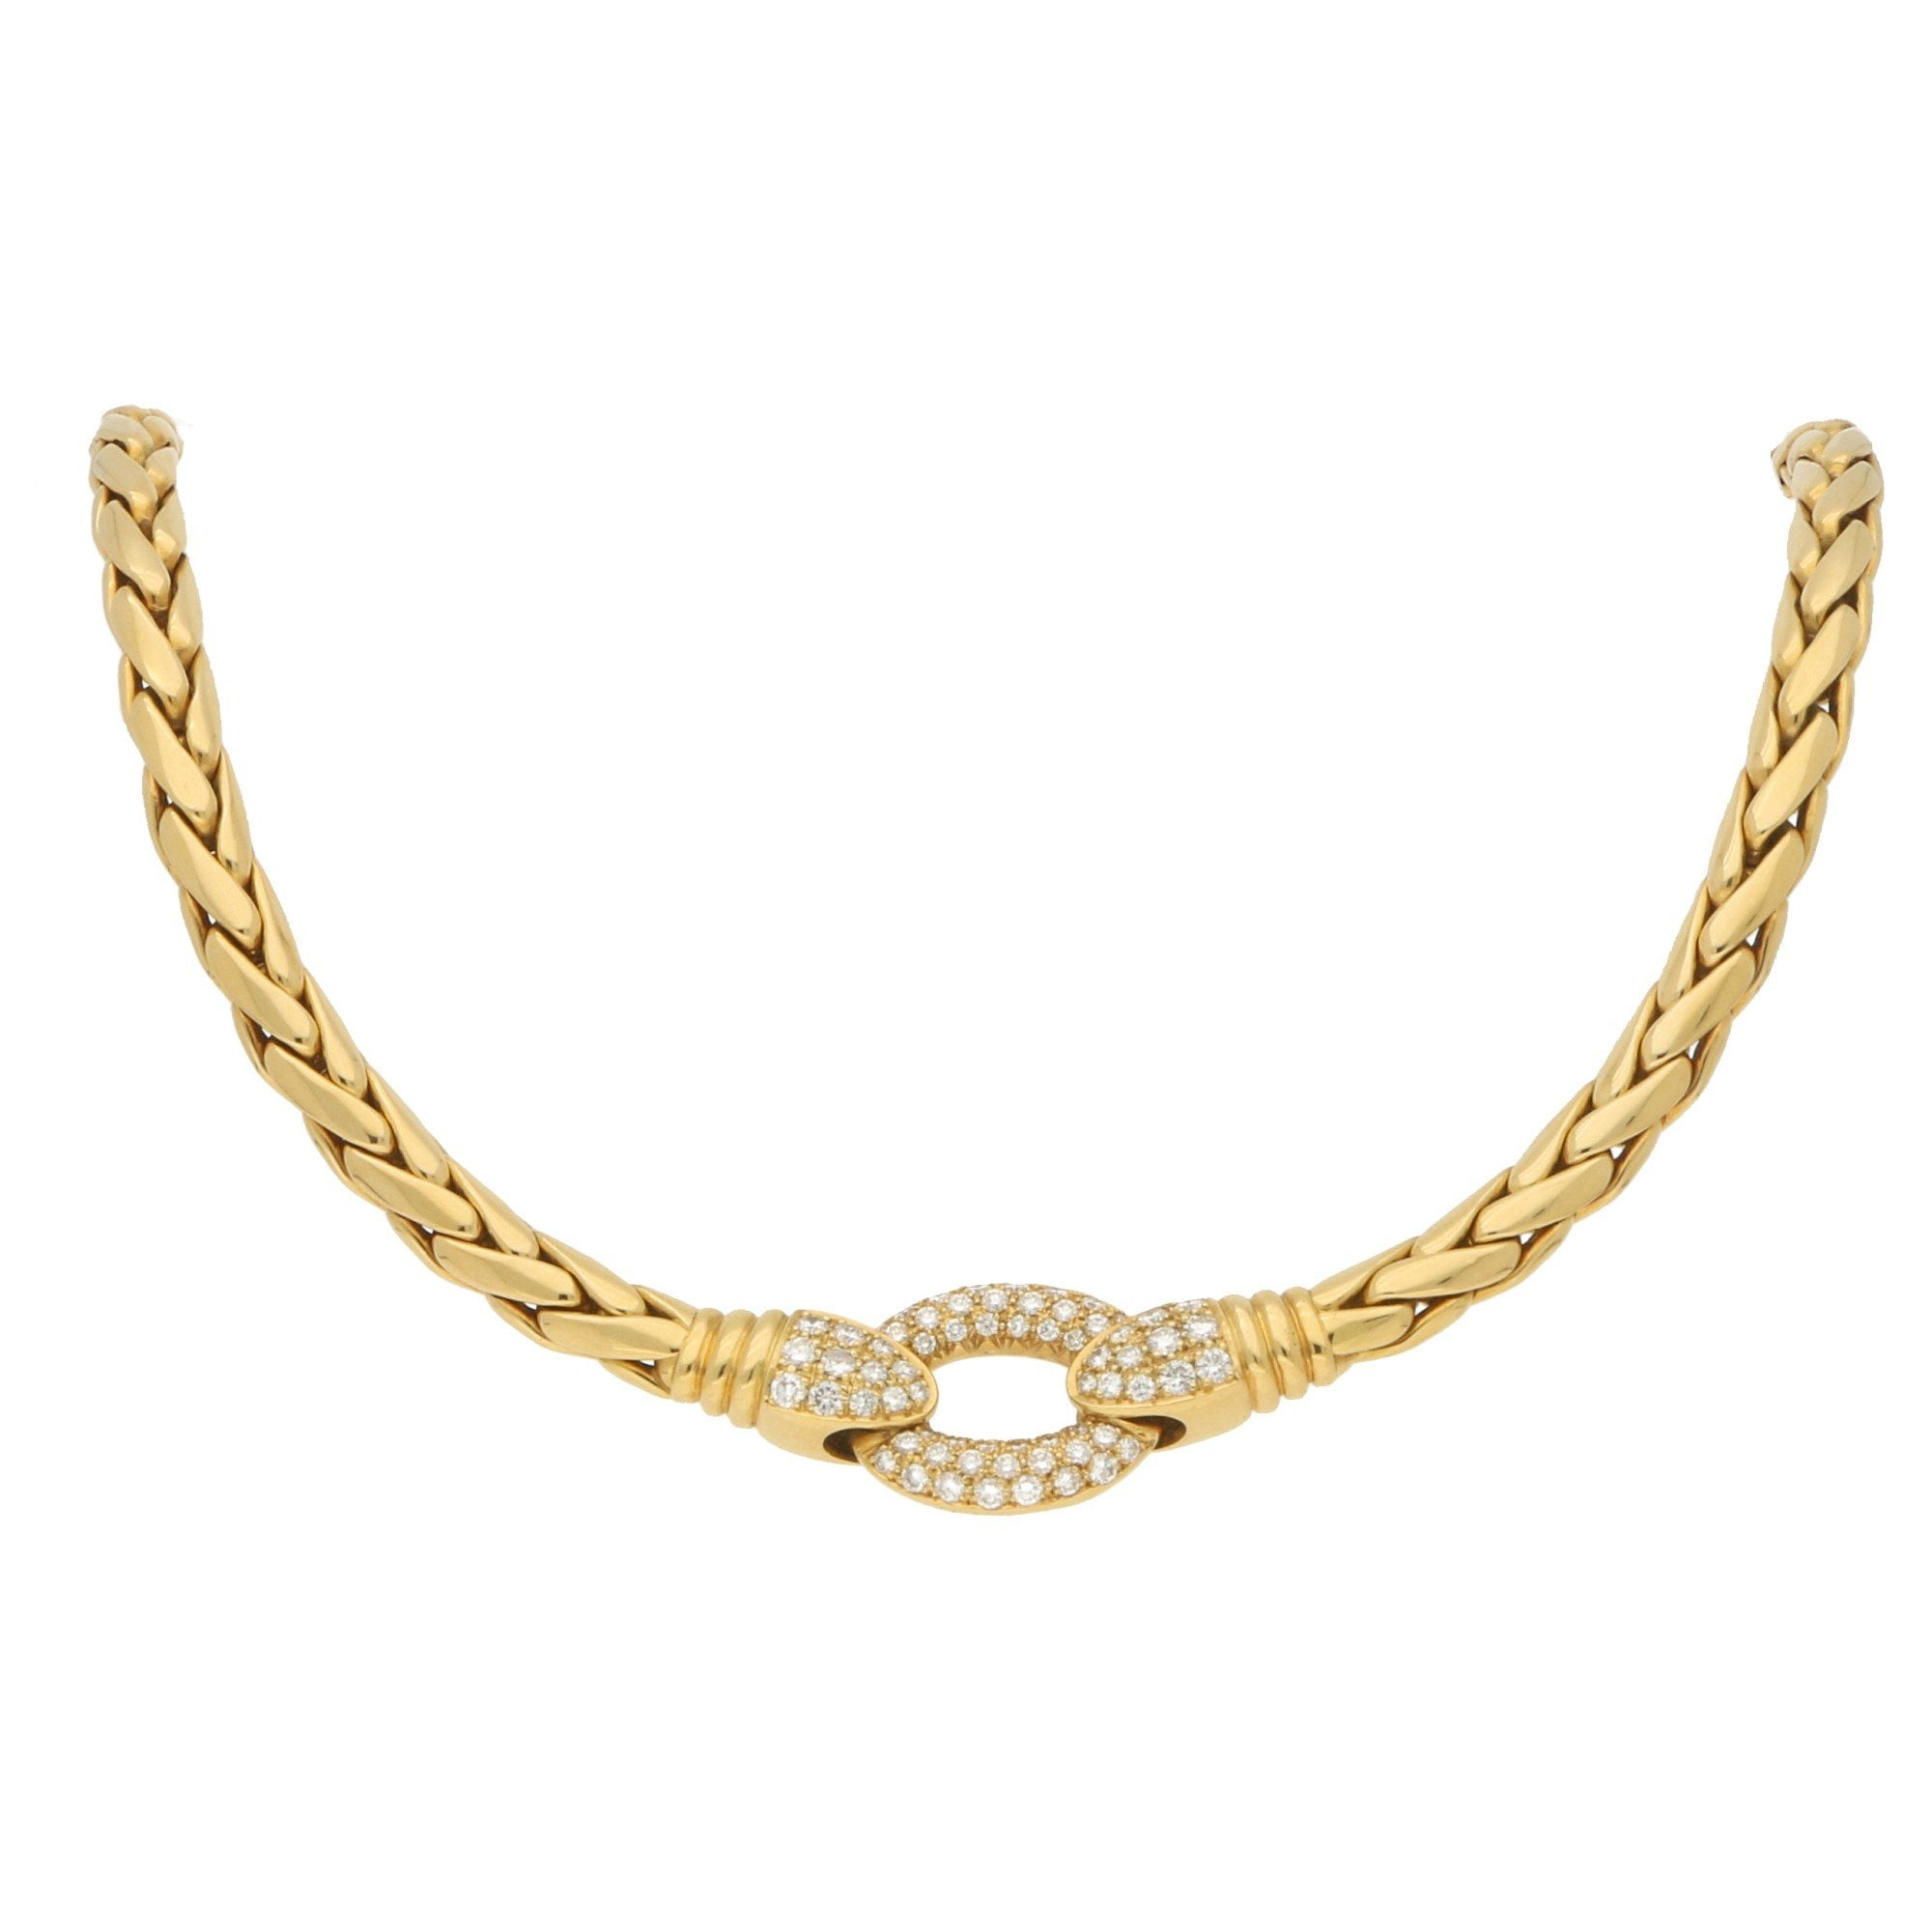 Patek Philippe Serpent Diamond Necklace In Yellow Gold With Regard To Latest Diamond Necklaces In Yellow Gold (View 9 of 25)